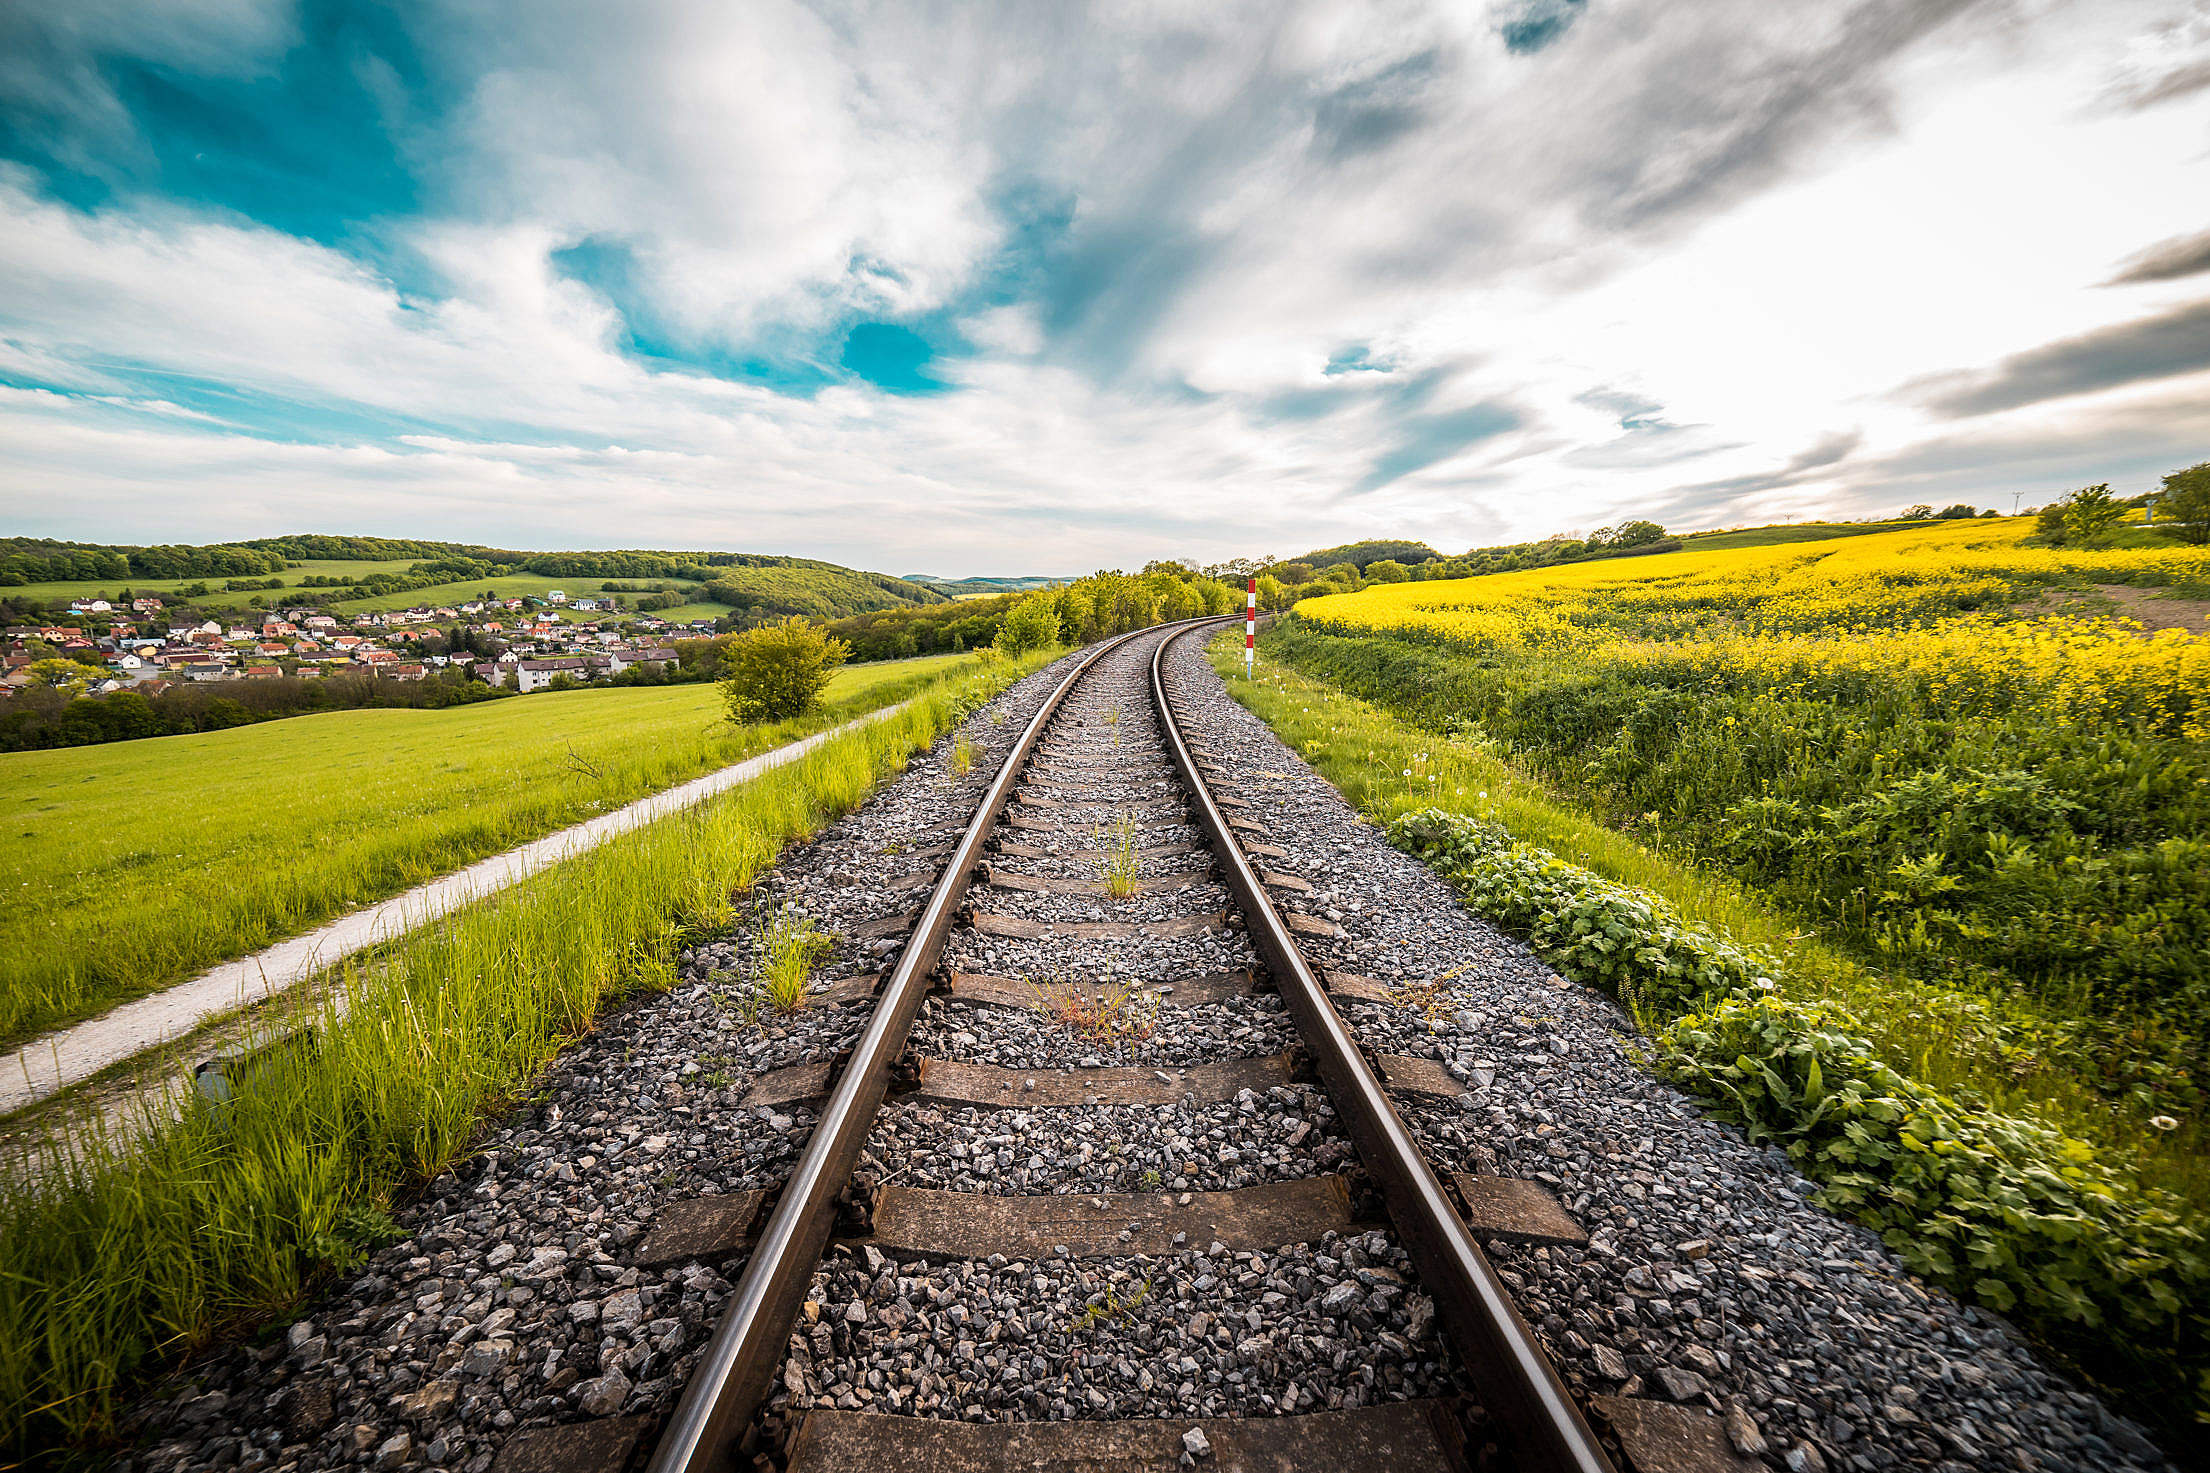 Railway Road in The Middle of a Field #2 Free Stock Photo